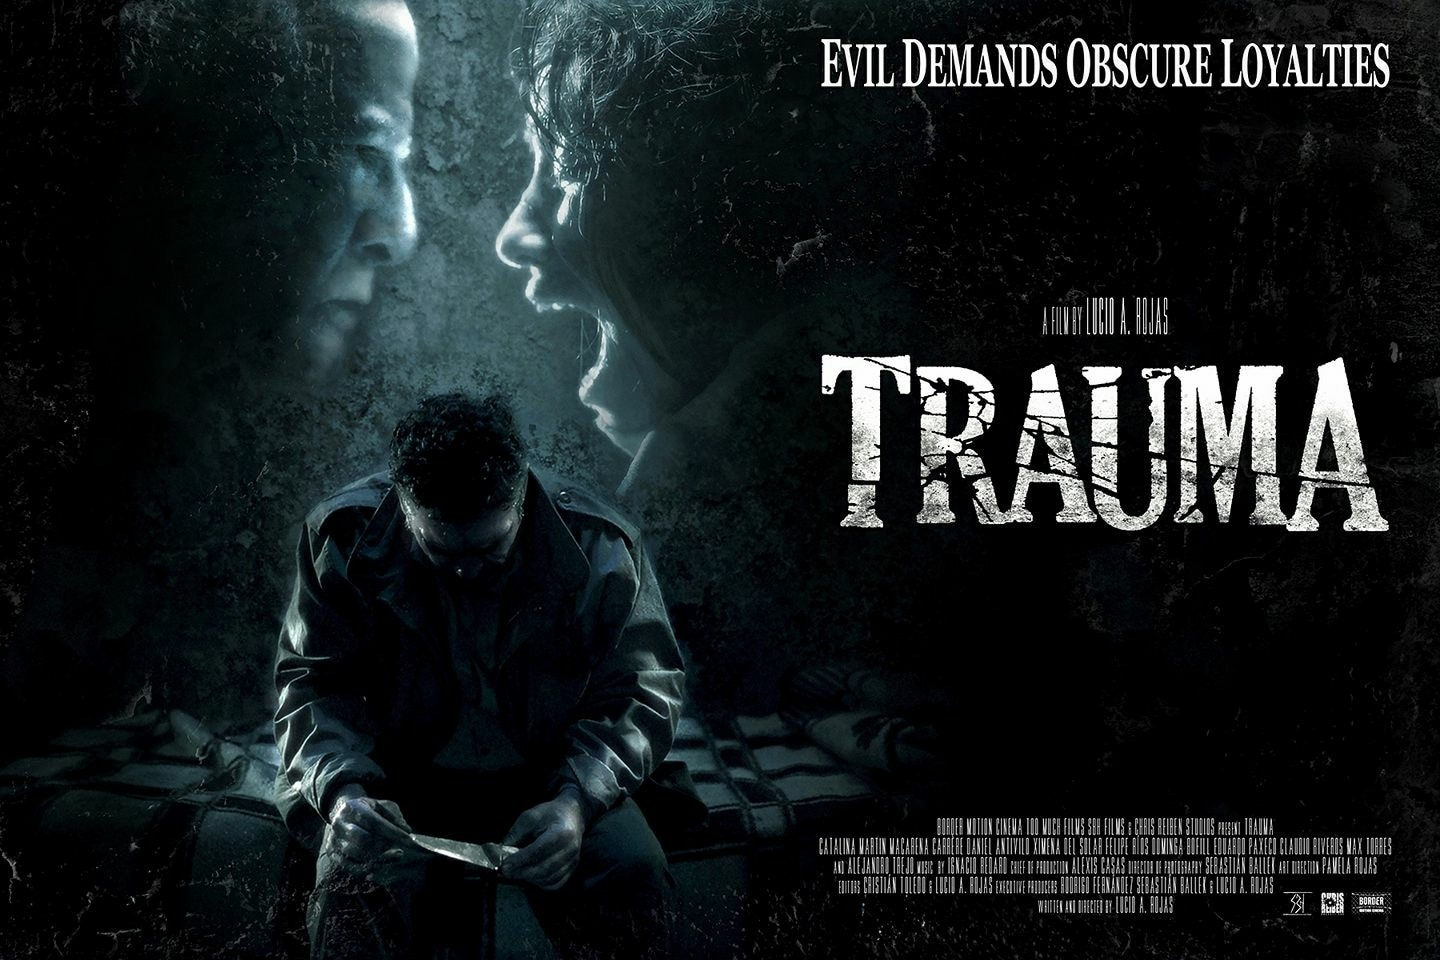 traumaquadsheet - Super NSFW Red Band Trailer For Trauma Released